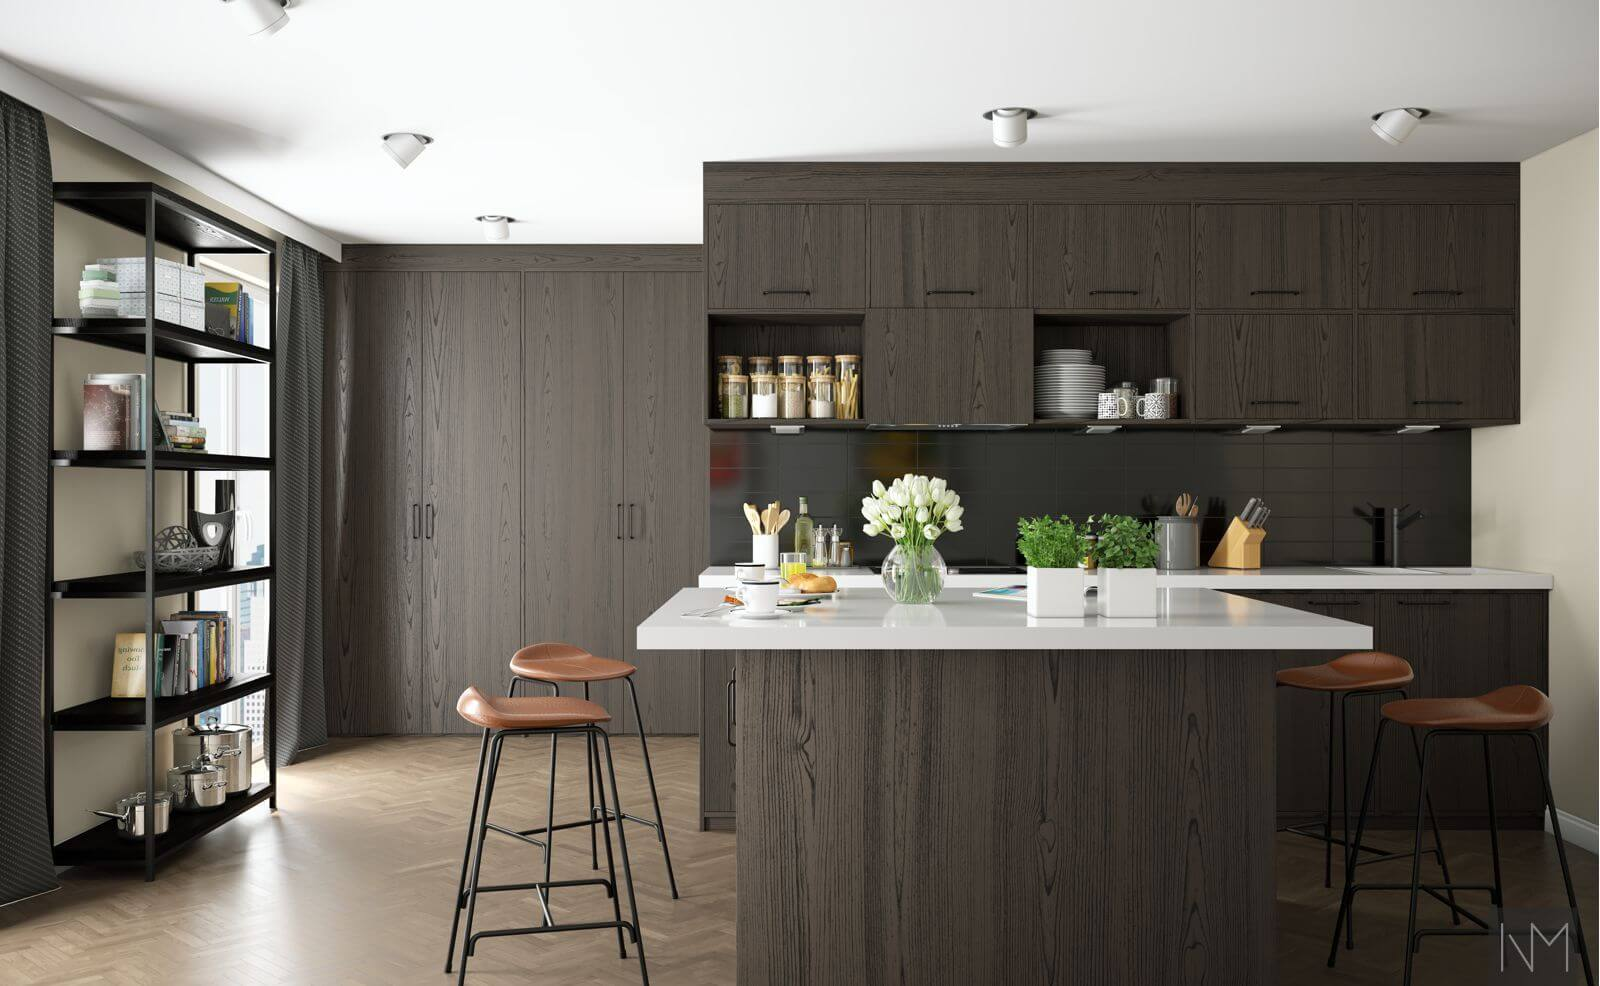 GAL-Kitchen fronts in ash veneer BEISET -CHARCOAL COLOR